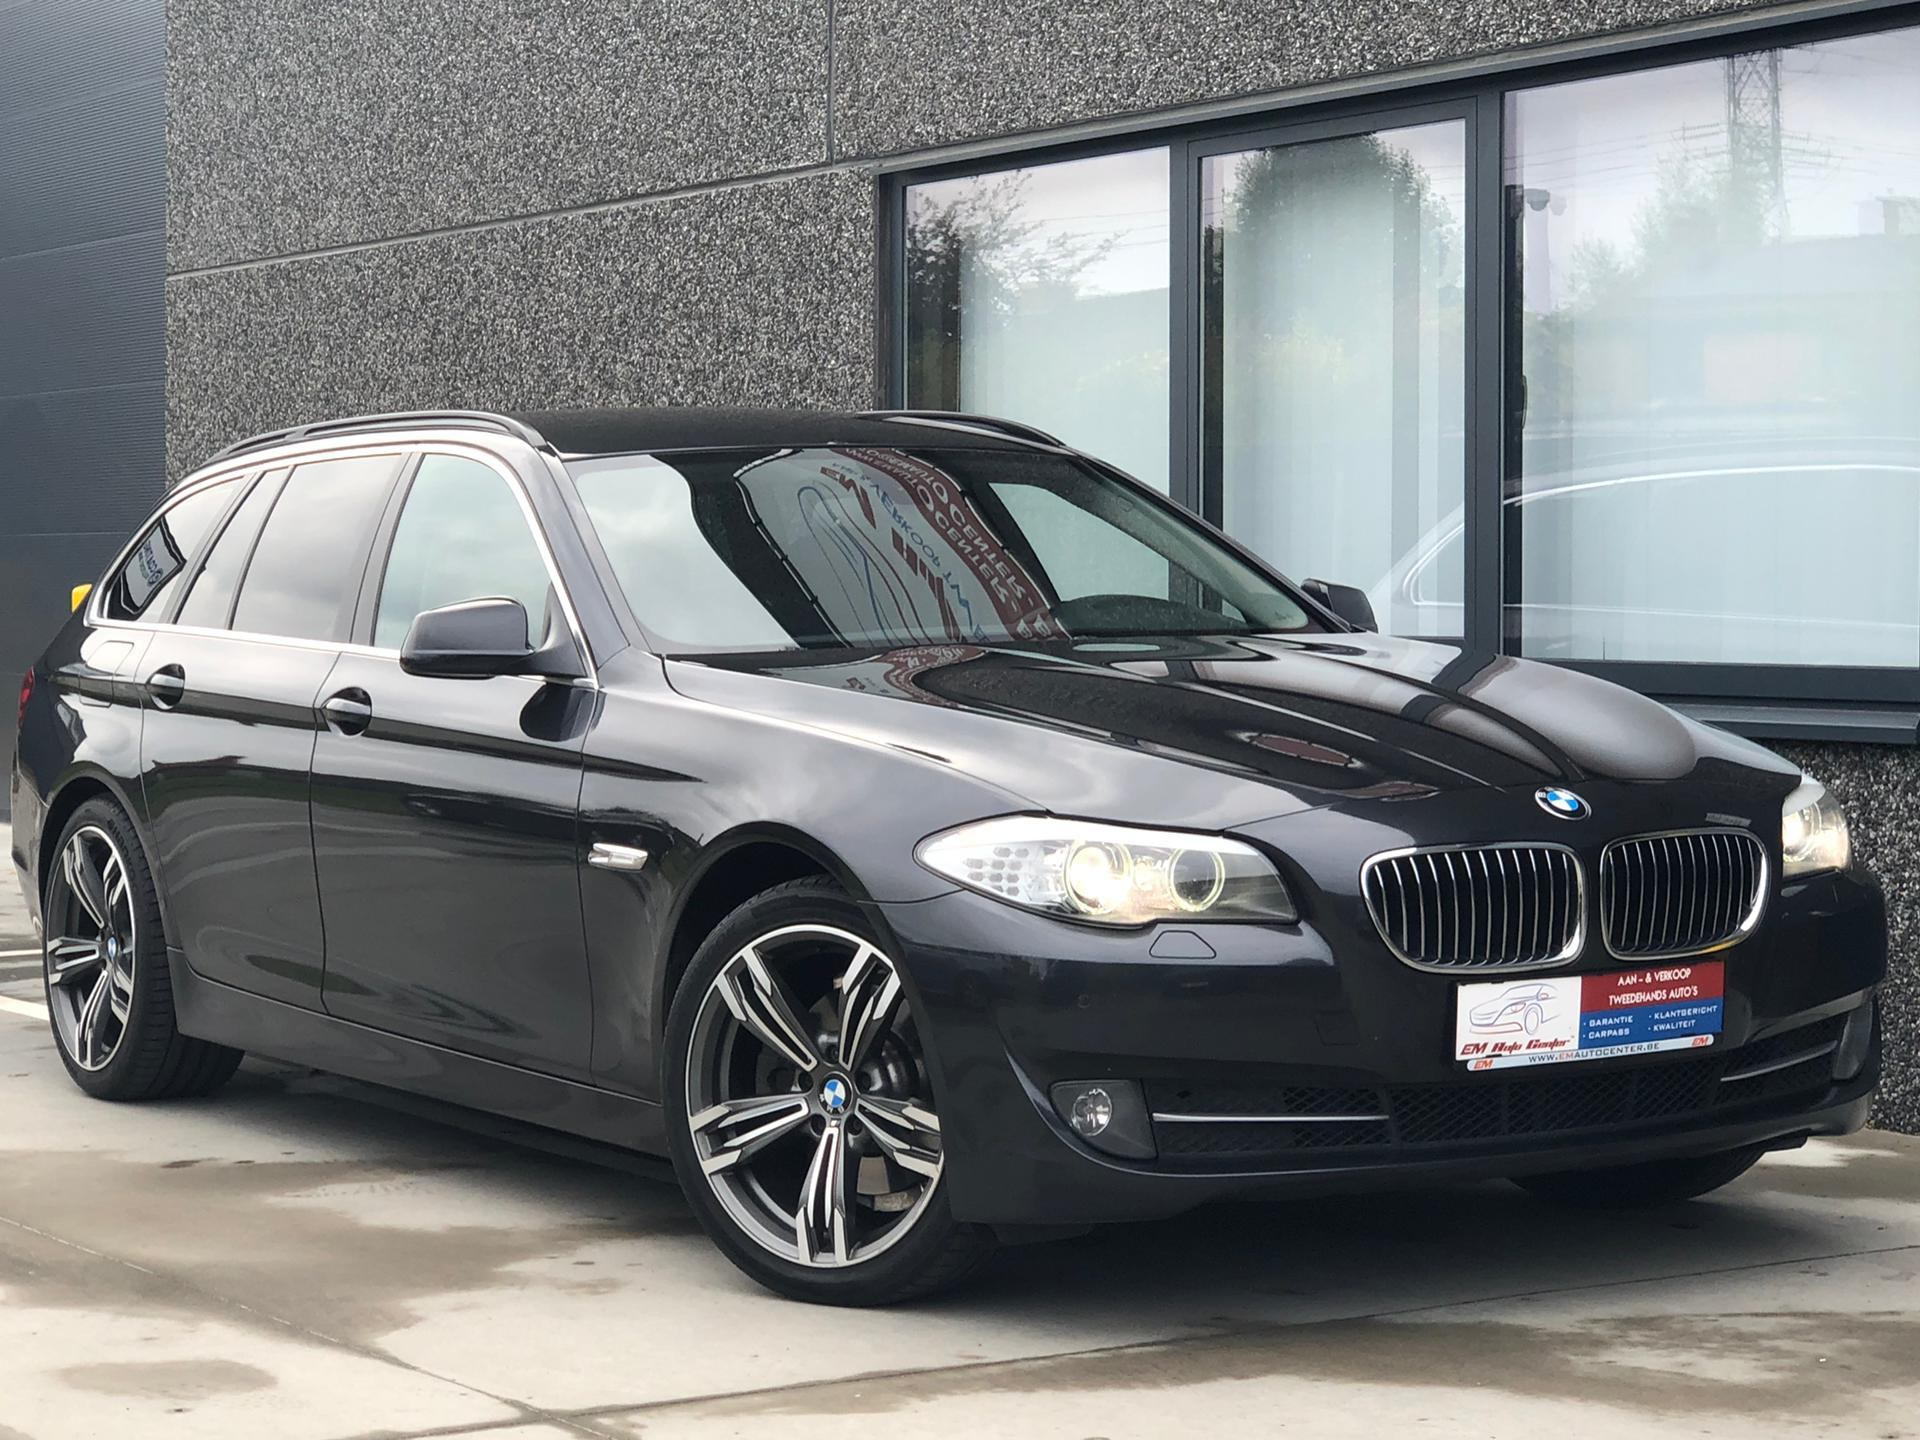 BMW 5 Serie Automaat